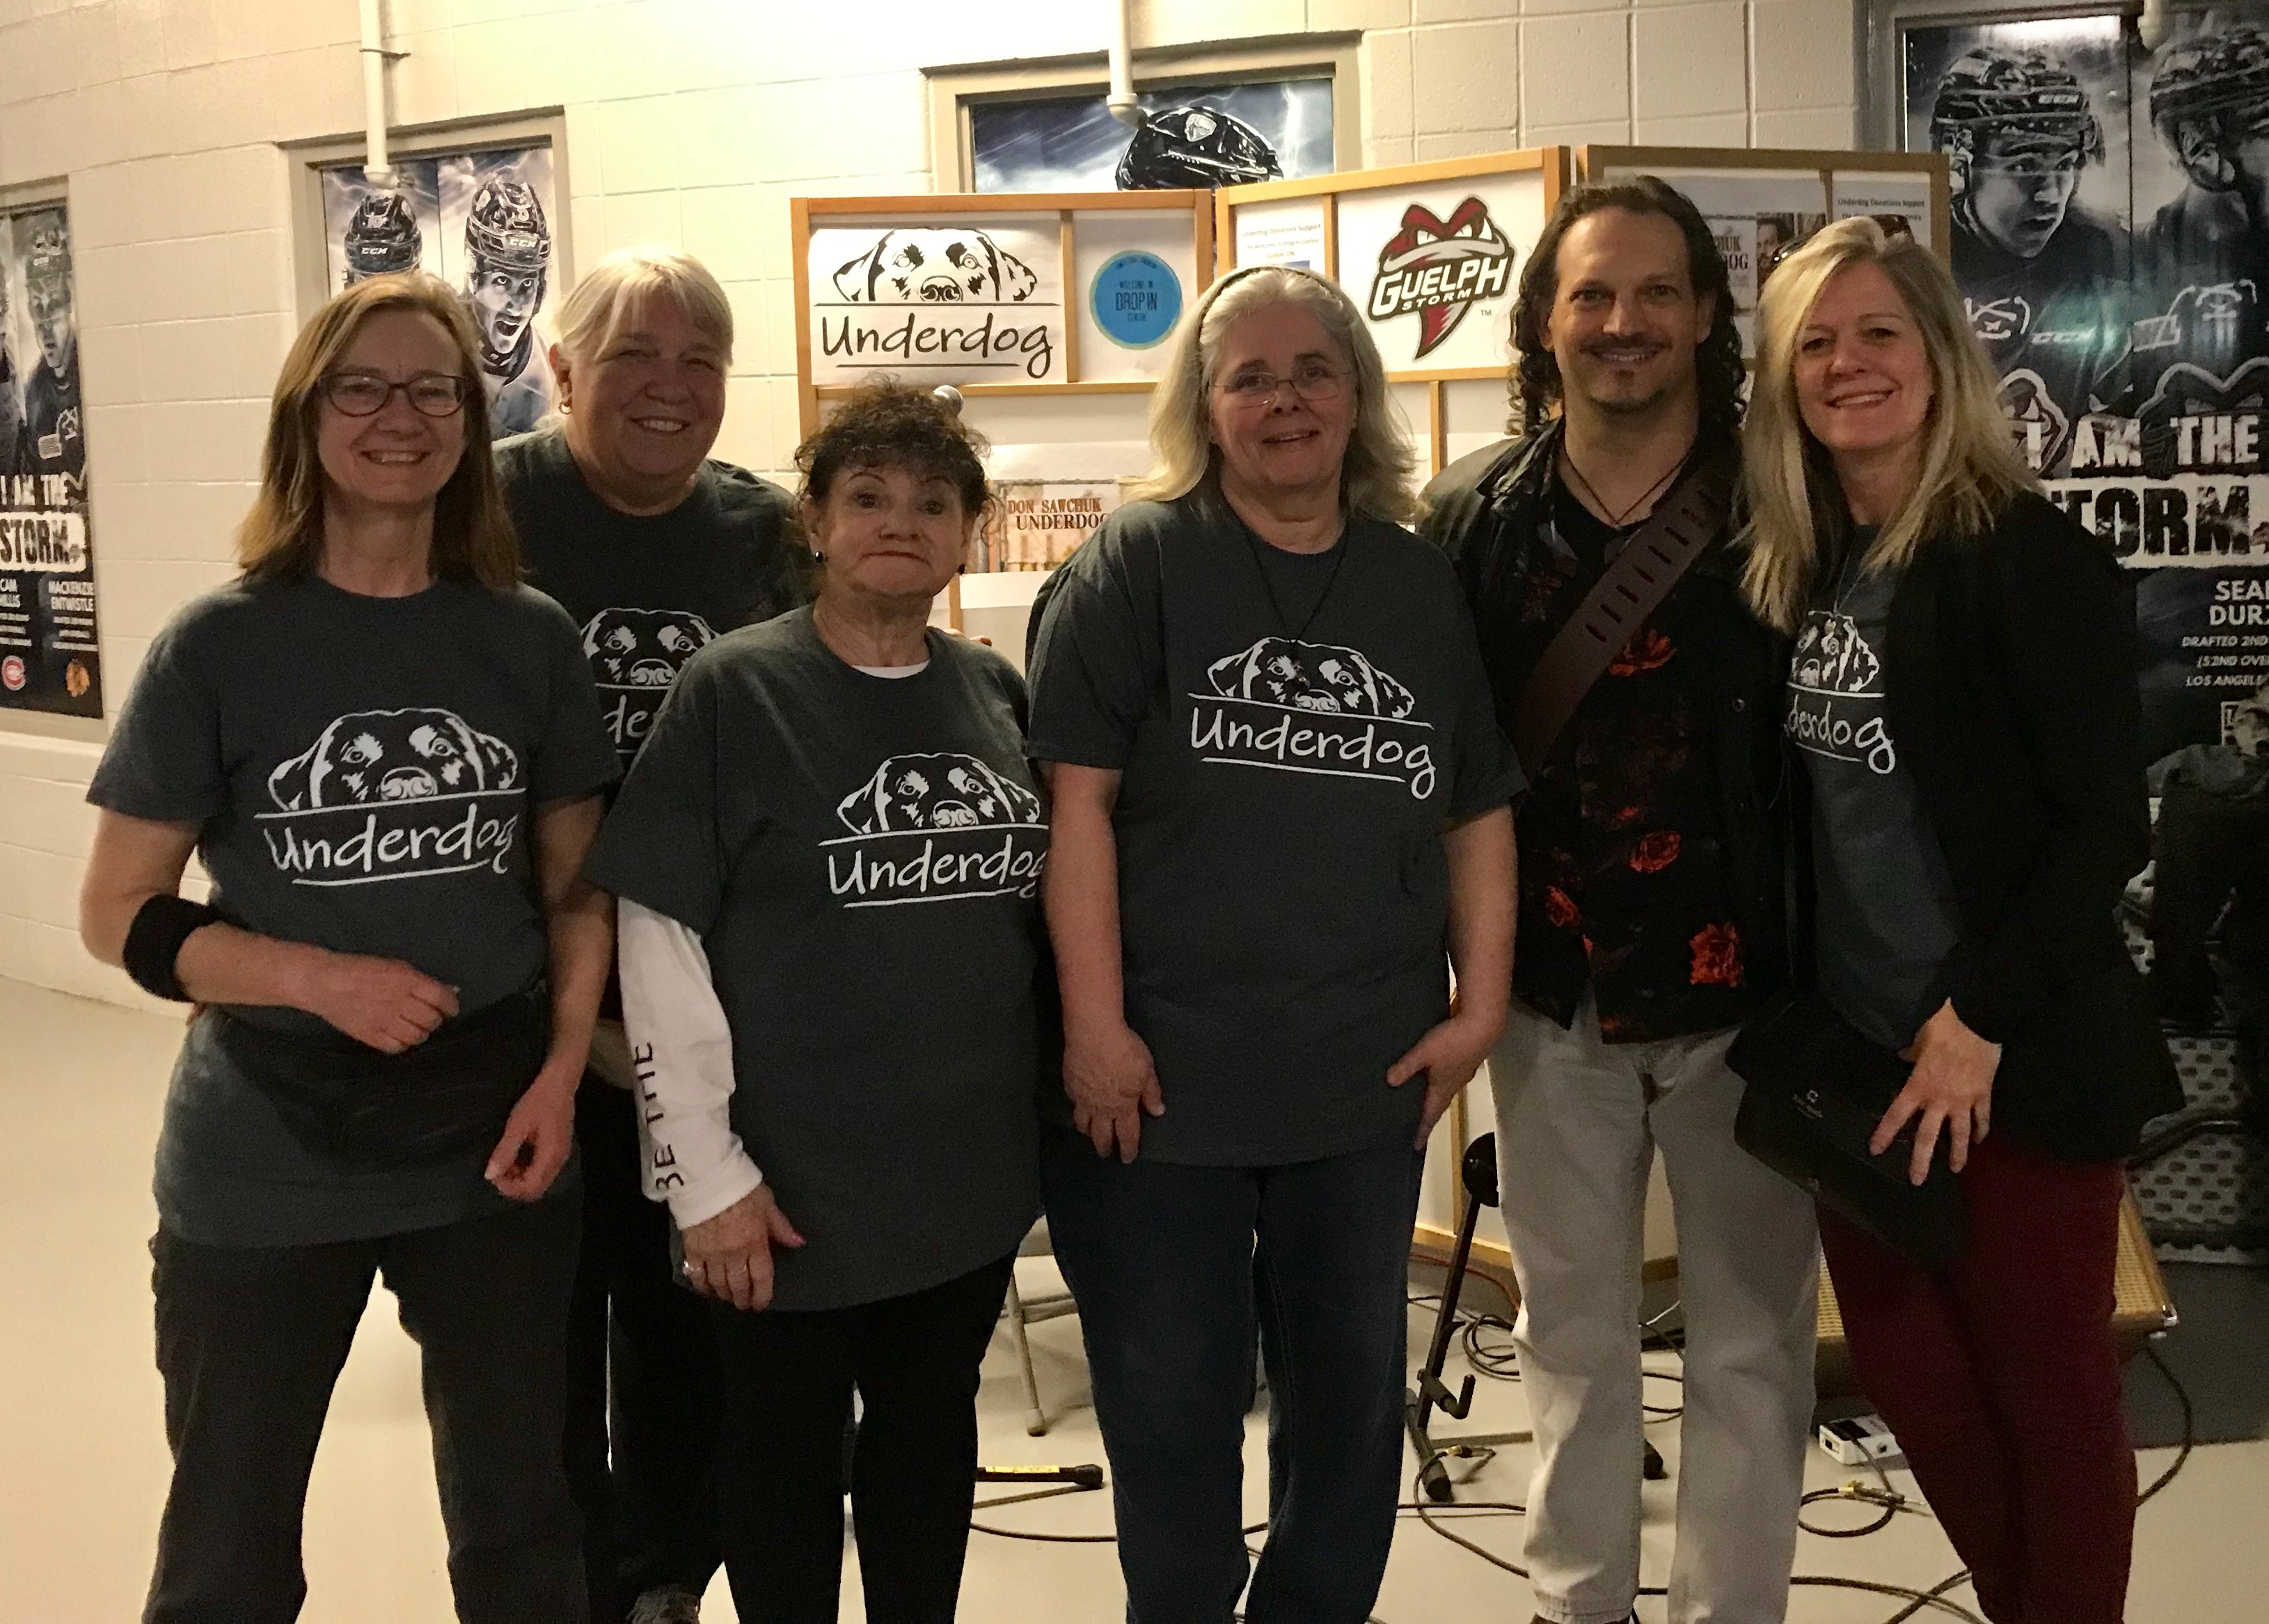 Street Team Volunteers (from left to right) Sandy Bassie, Barbara Heagy, Sandy Massengale, Heather Johnston, Don Sawchuk, Diane Pelow.